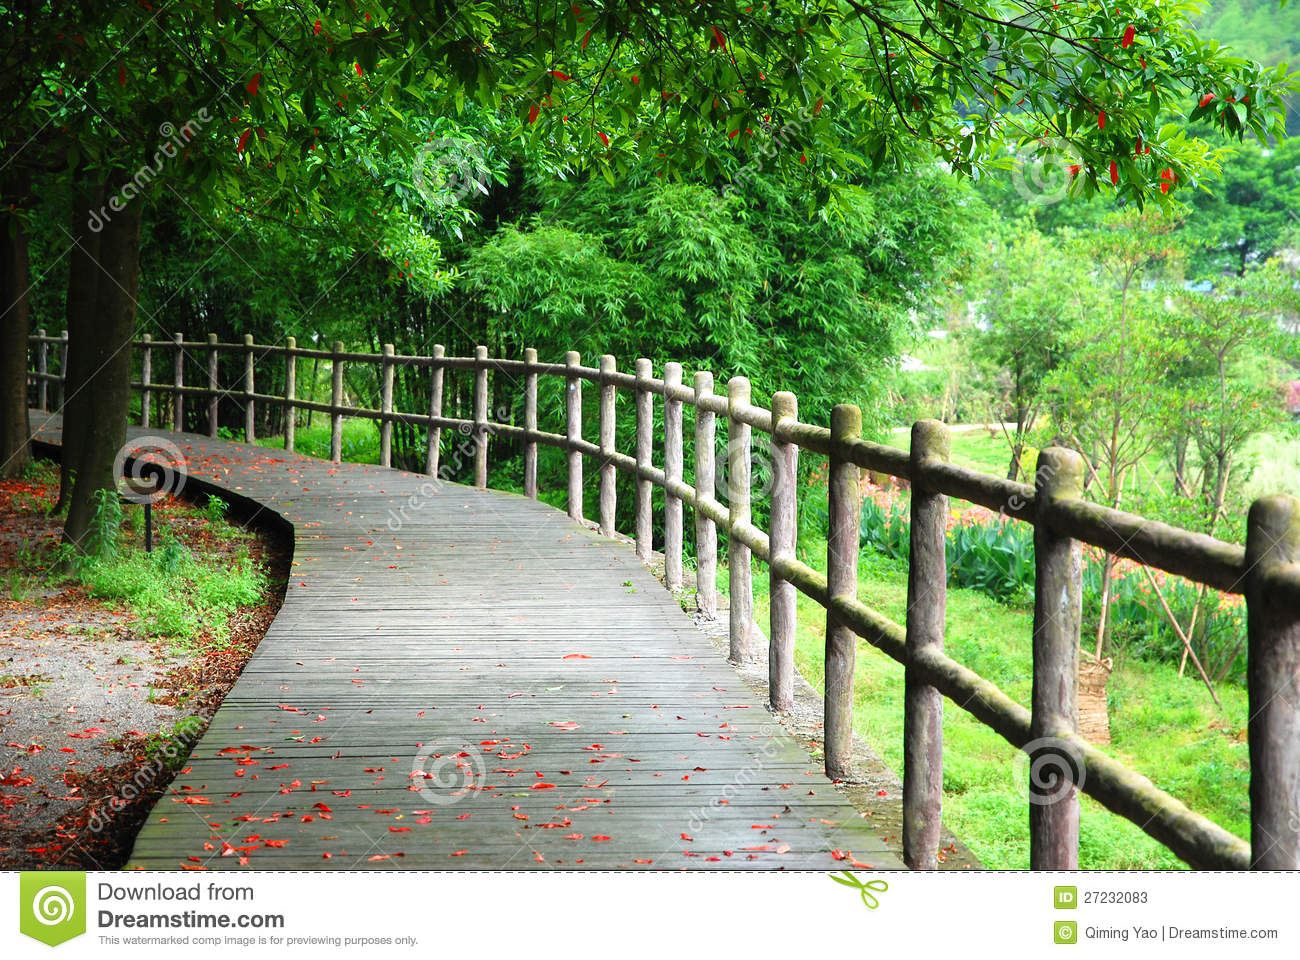 Wooden path and handrail